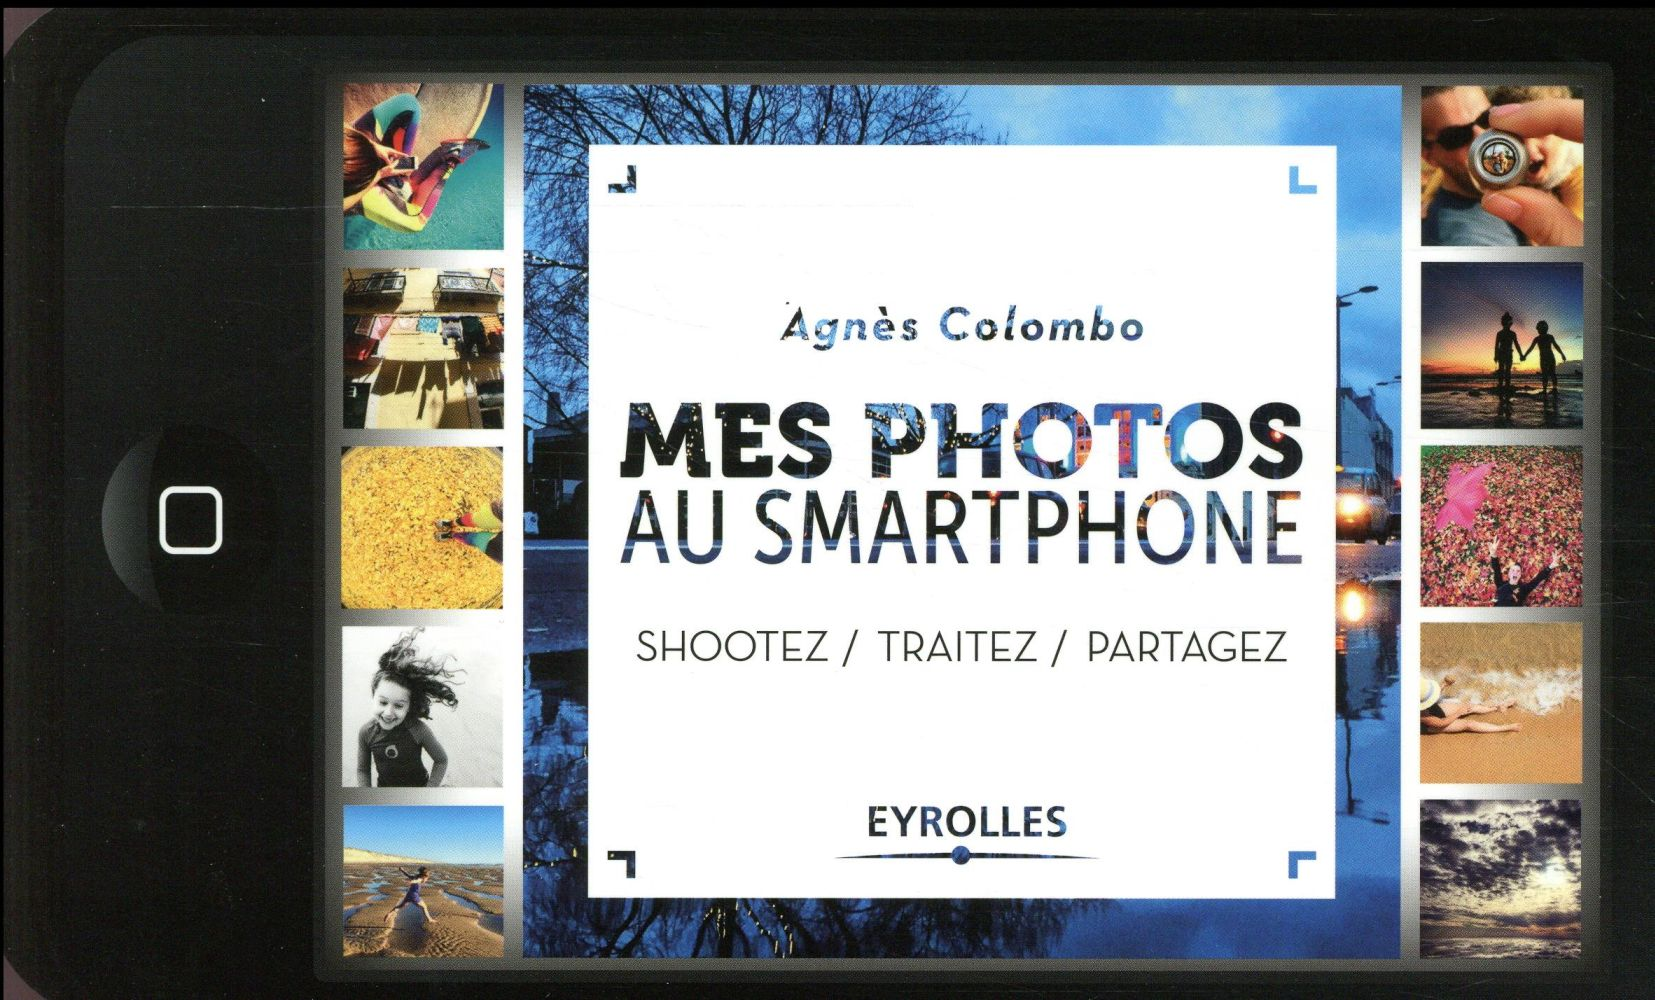 MES PHOTOS AU SMARTPHONE